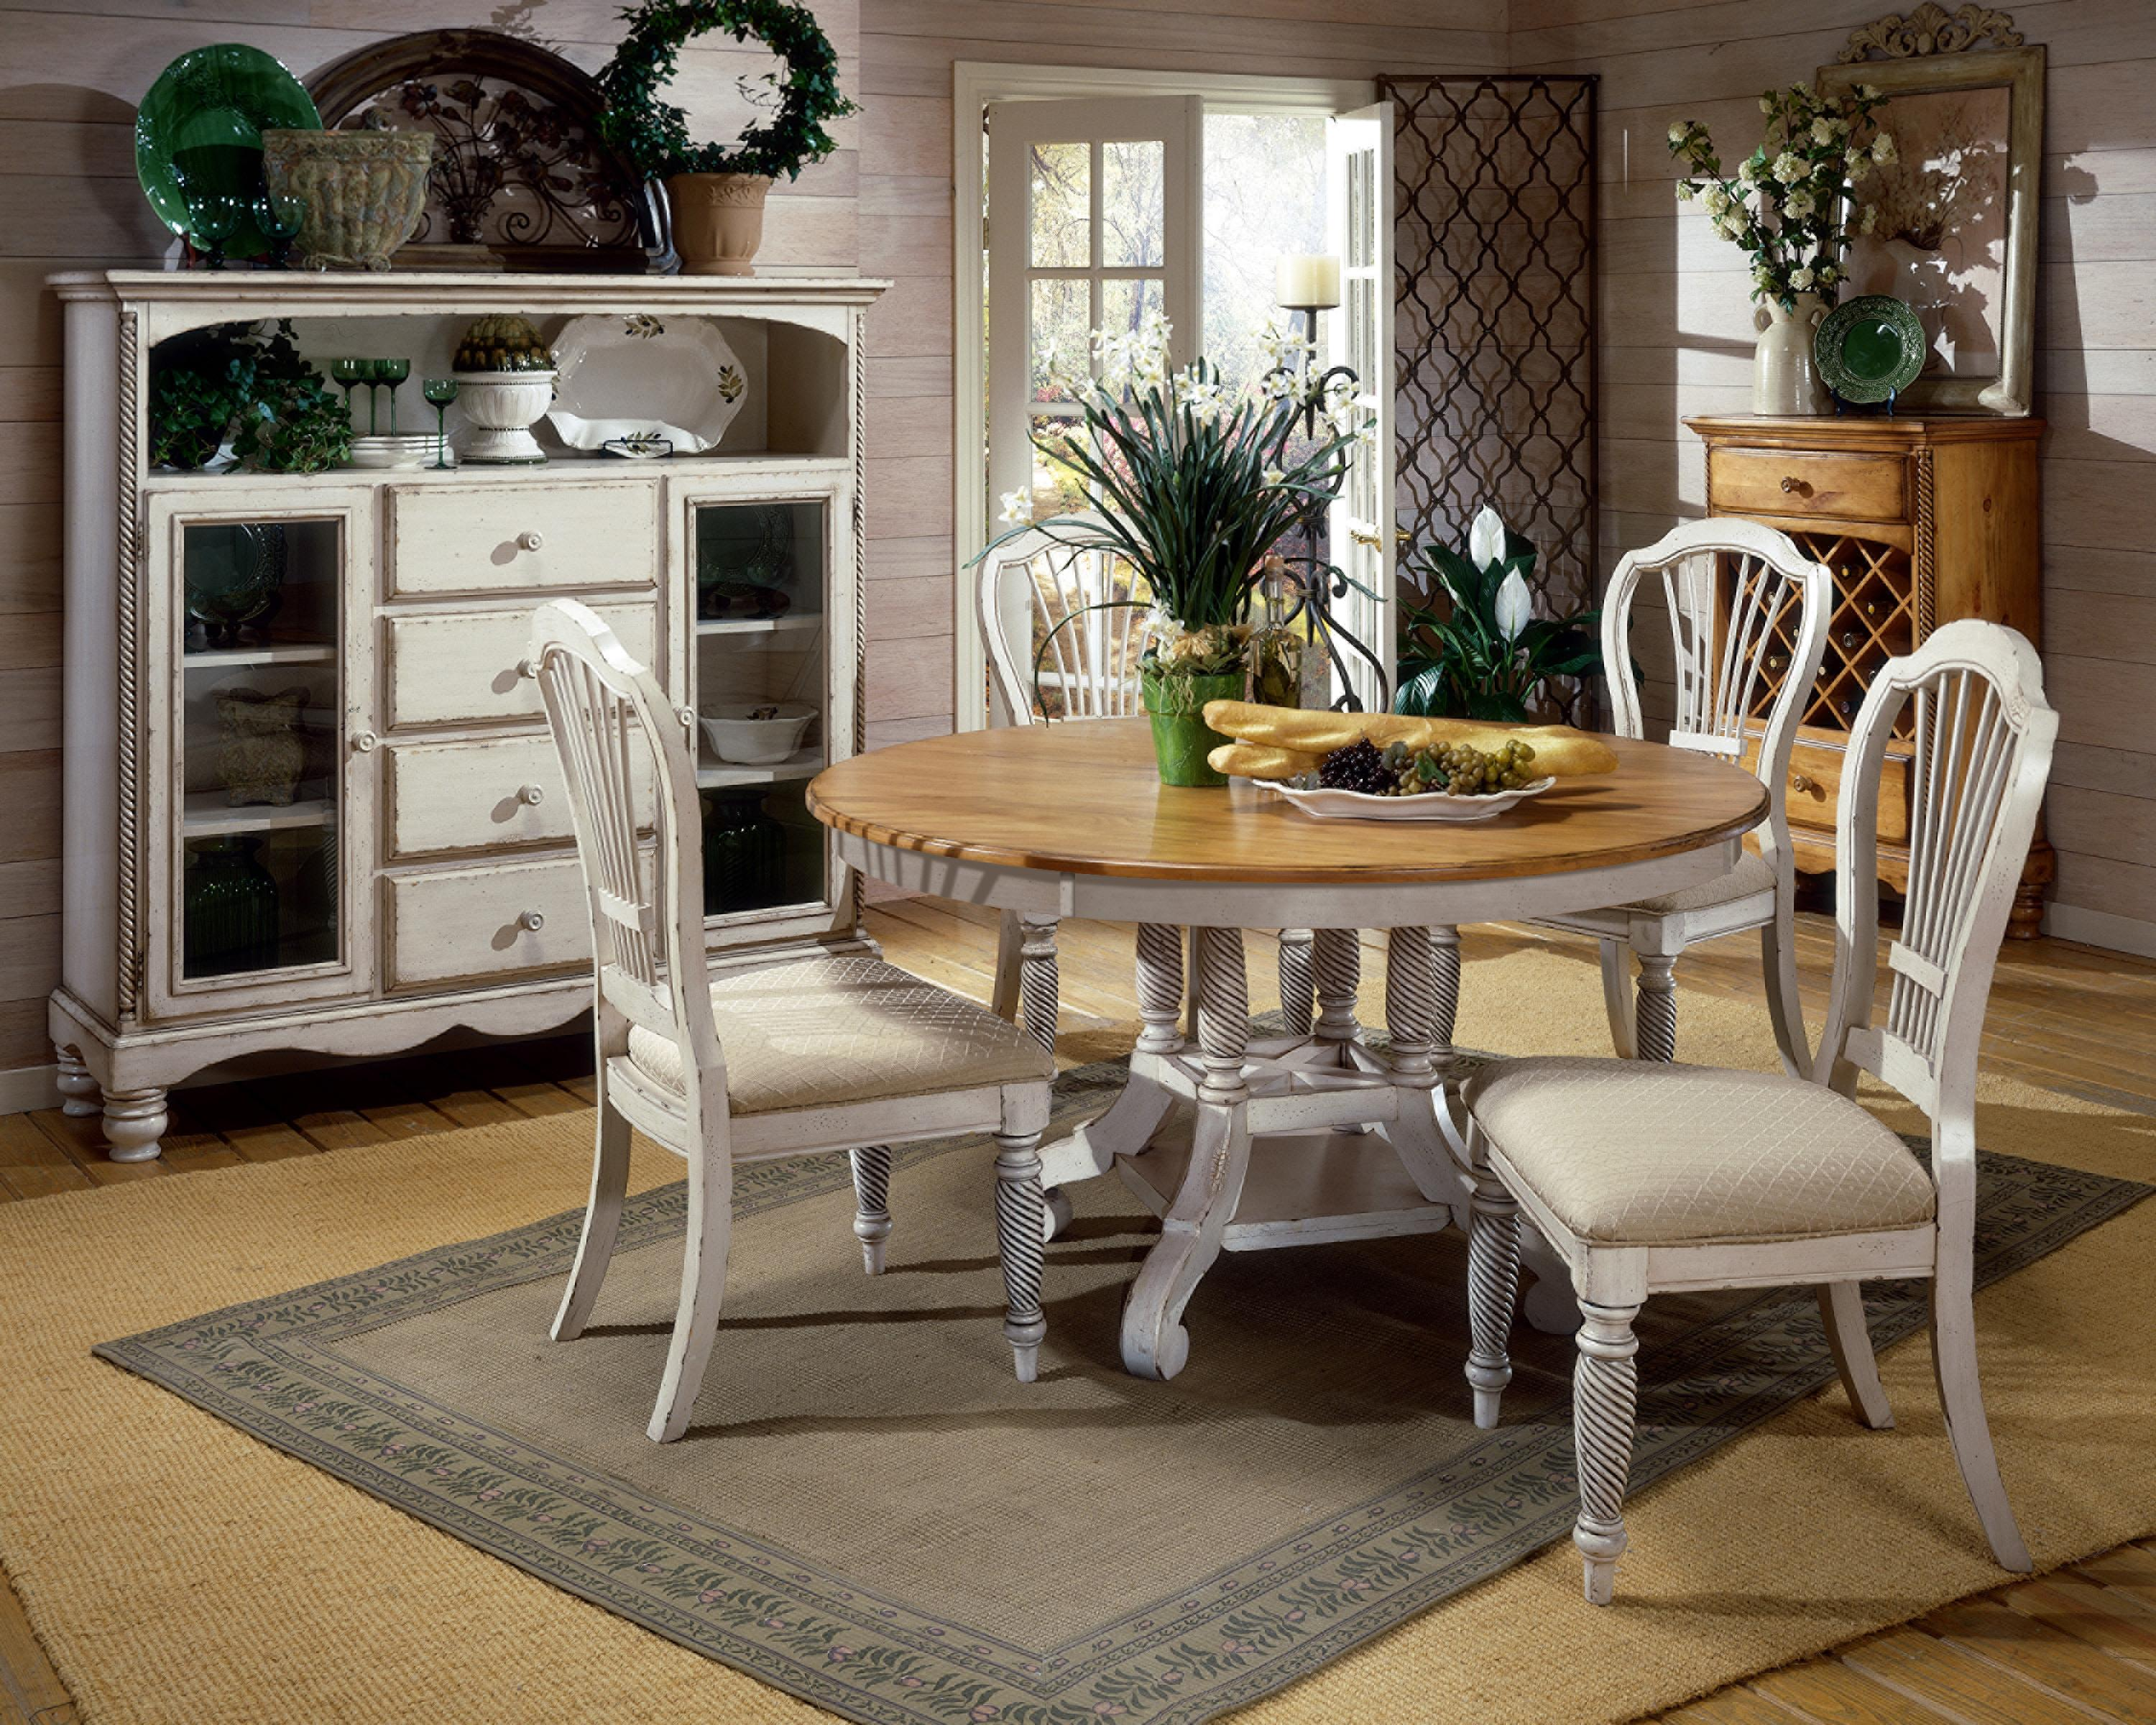 white kitchen tables ashley furniture table beautiful round and chairs homesfeed